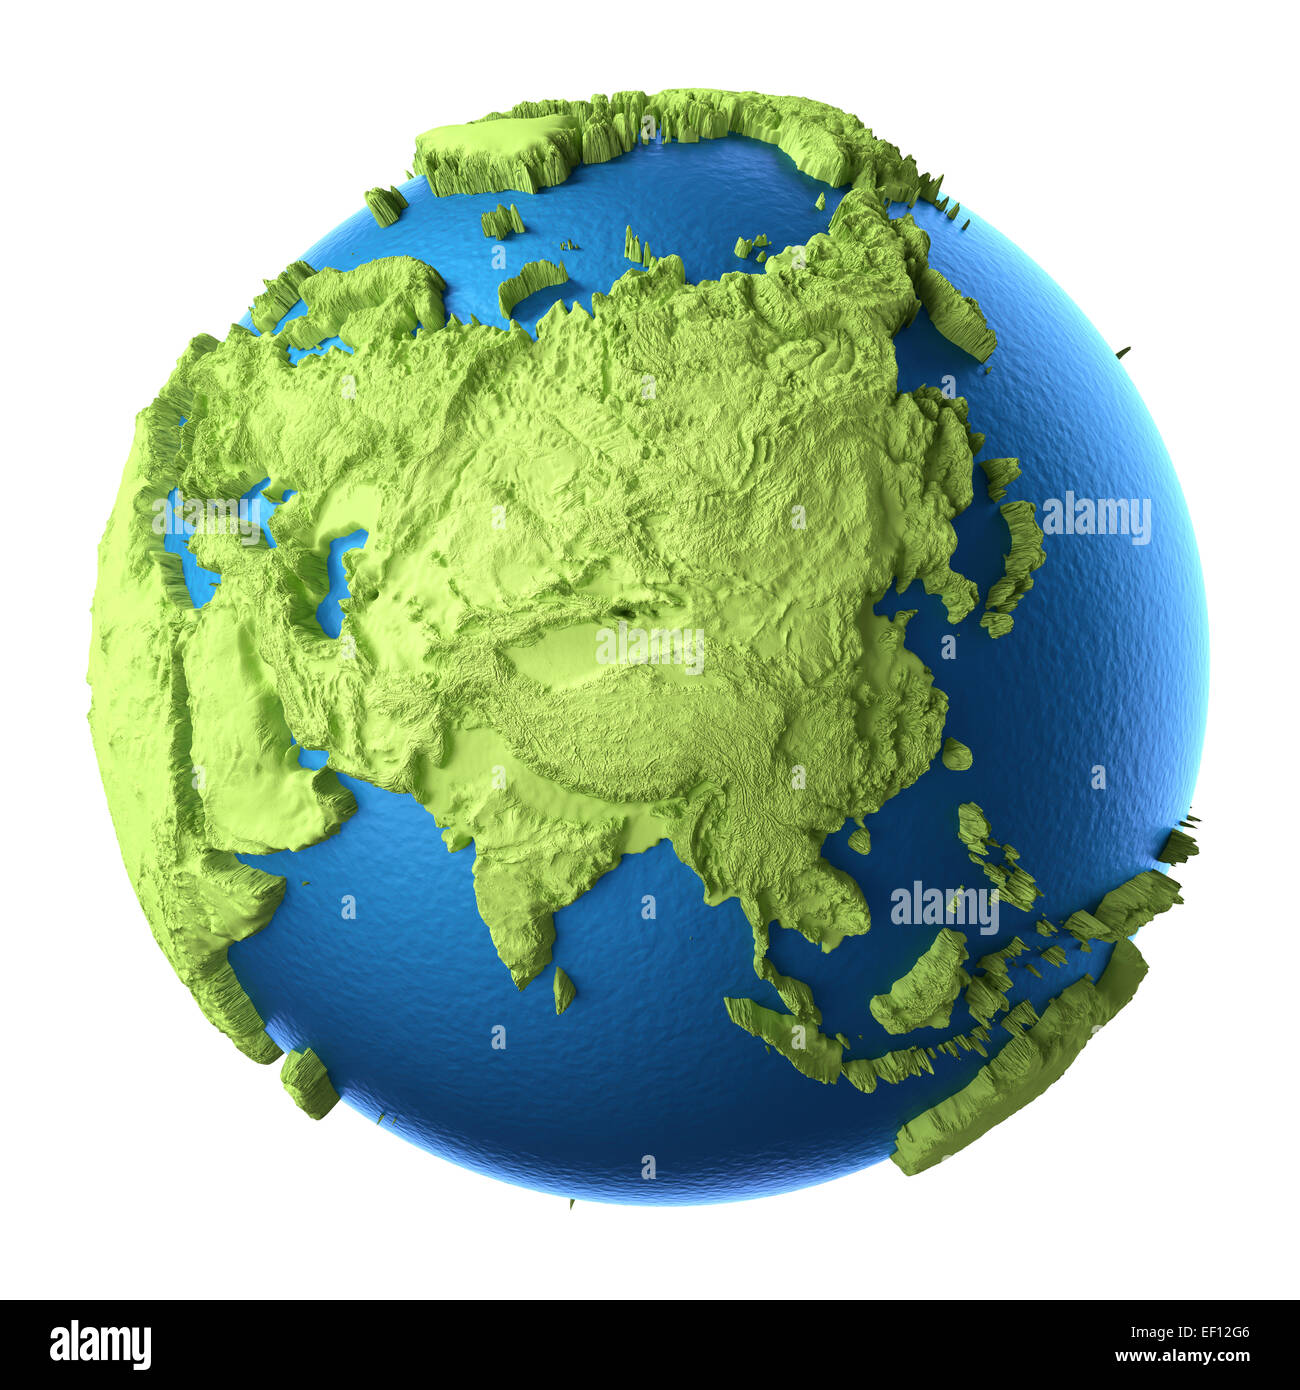 Map Of Asia 3d.Asia Globe Map 3d Stock Photos Asia Globe Map 3d Stock Images Alamy